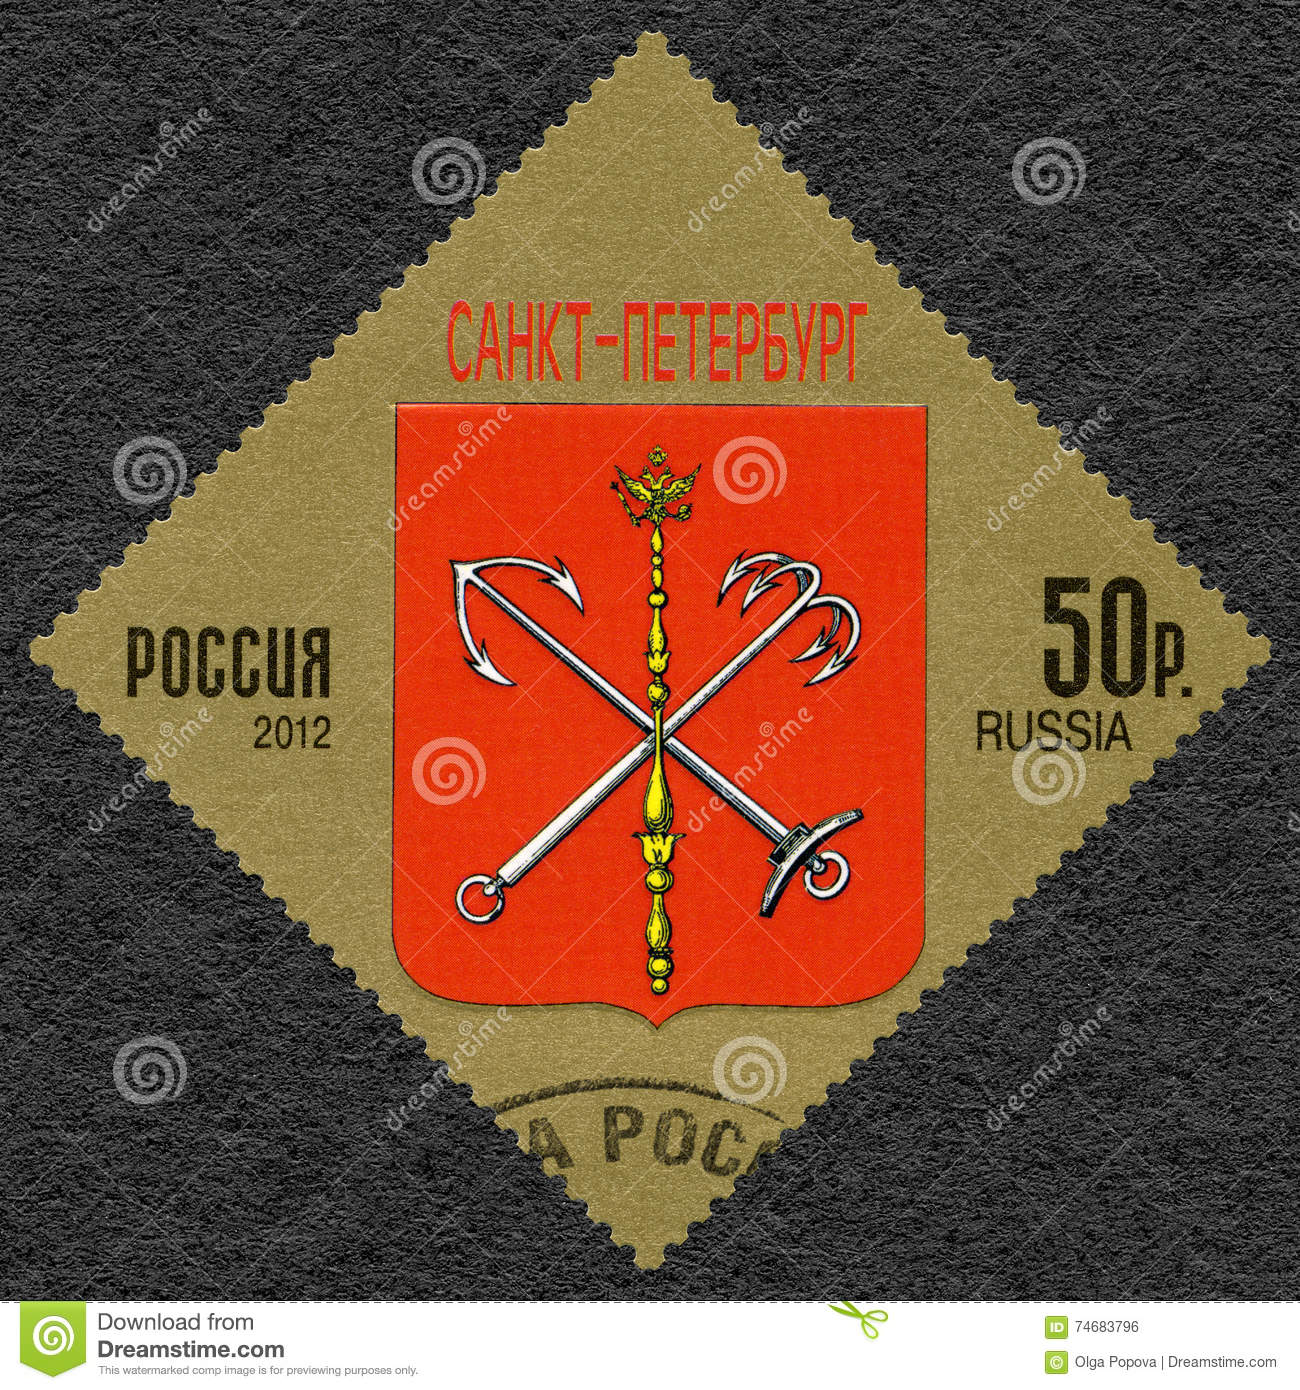 RUSSIA - 2012: shows Coat of arms of St.Petersburg, Russian Federation